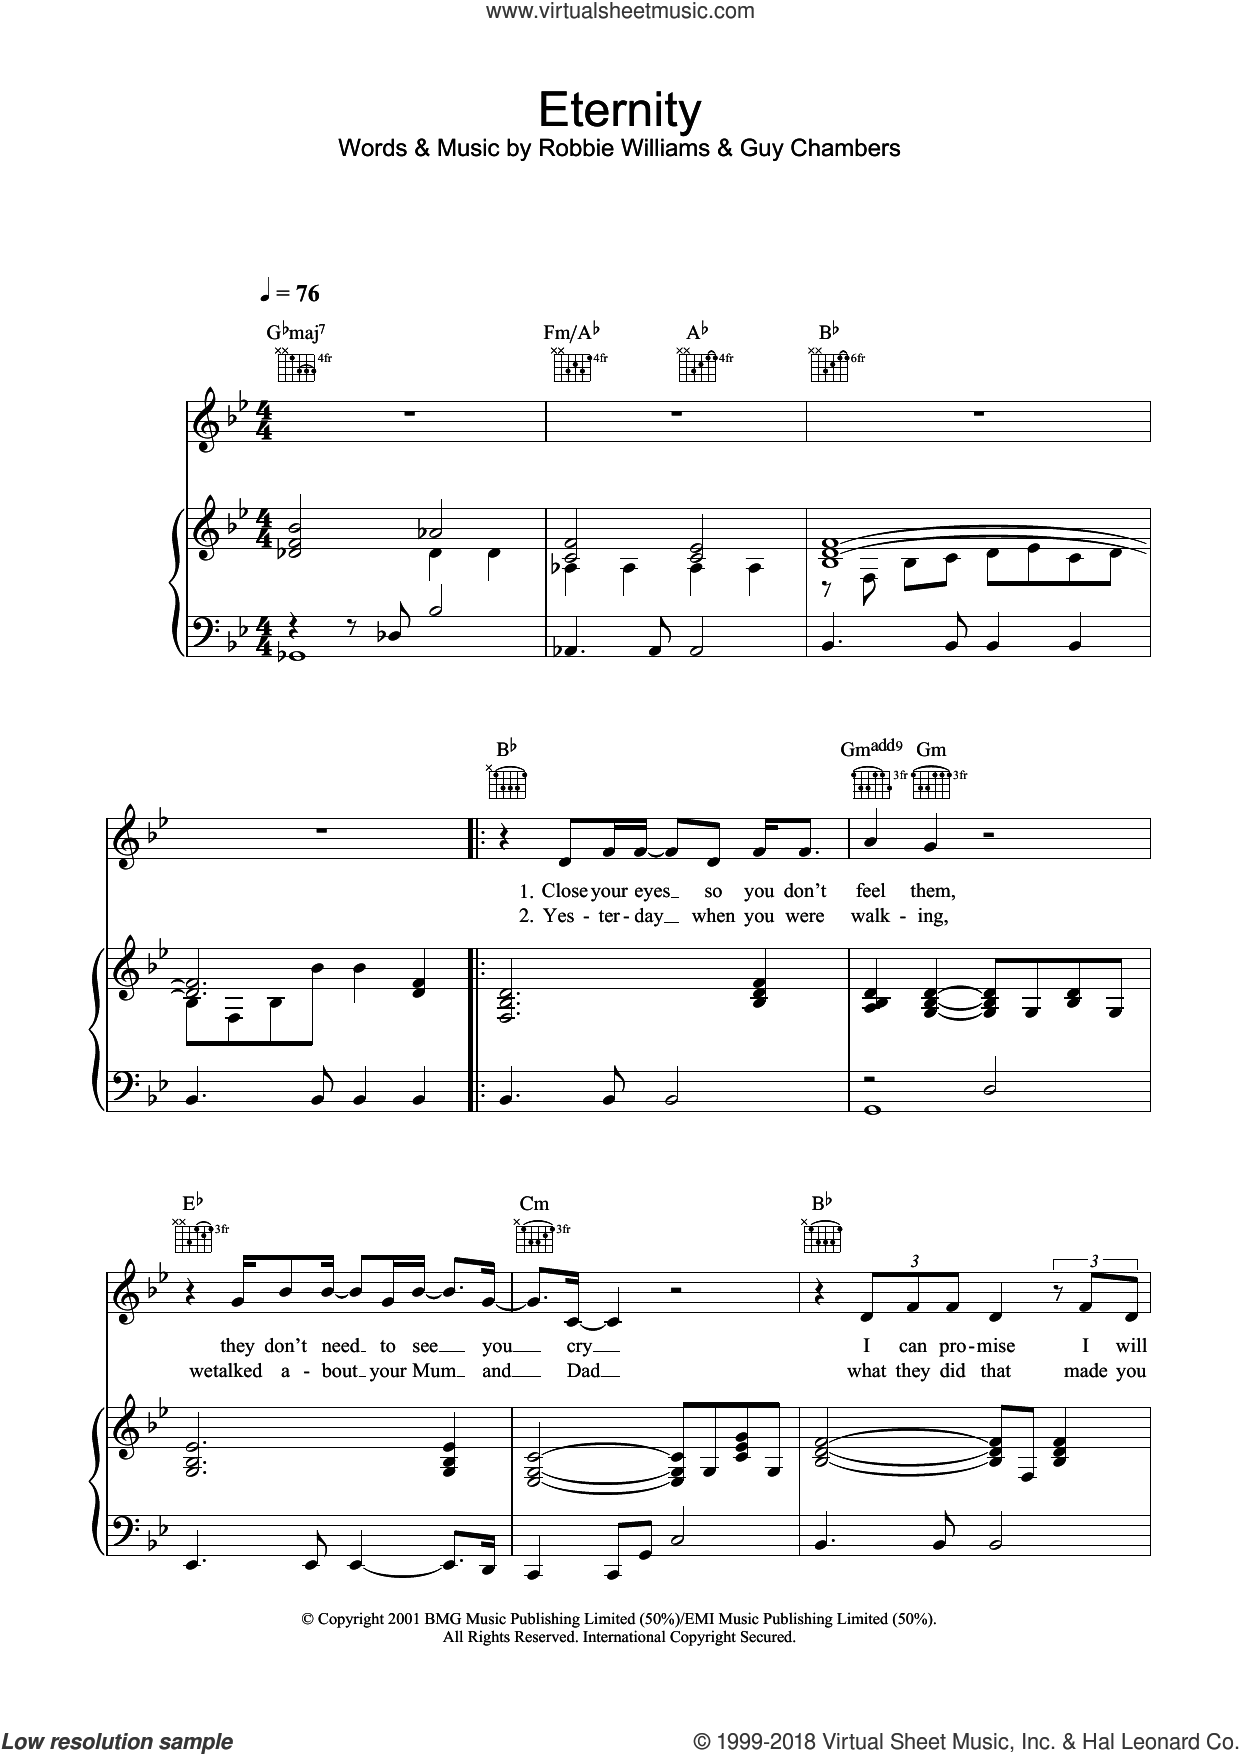 Eternity sheet music for voice, piano or guitar by Guy Chambers